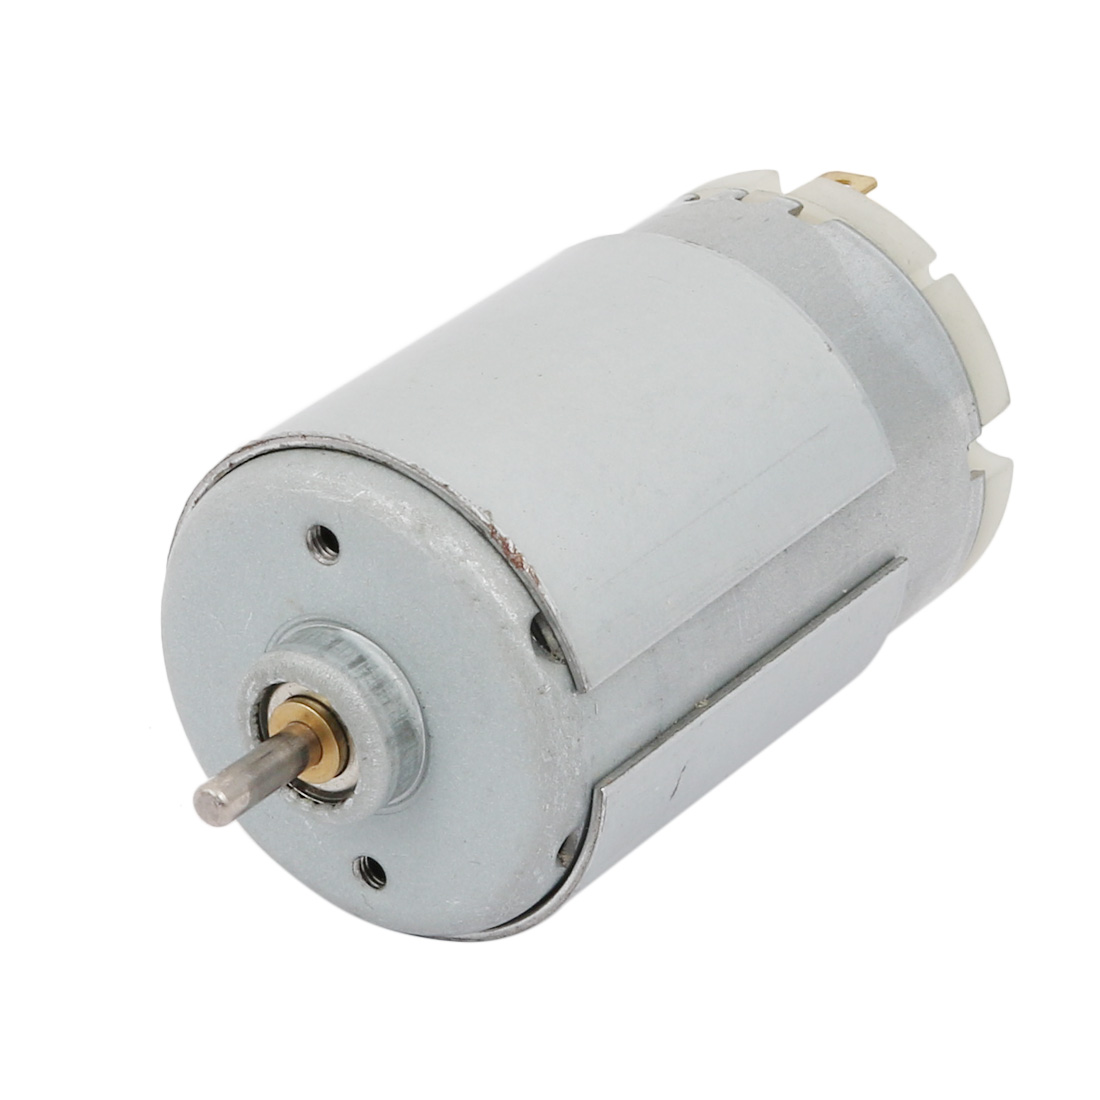 RS-555PC DC12V 2400RPM 3.2mm Dia Shaft Brushed DC Motor for DIY Electric Projects